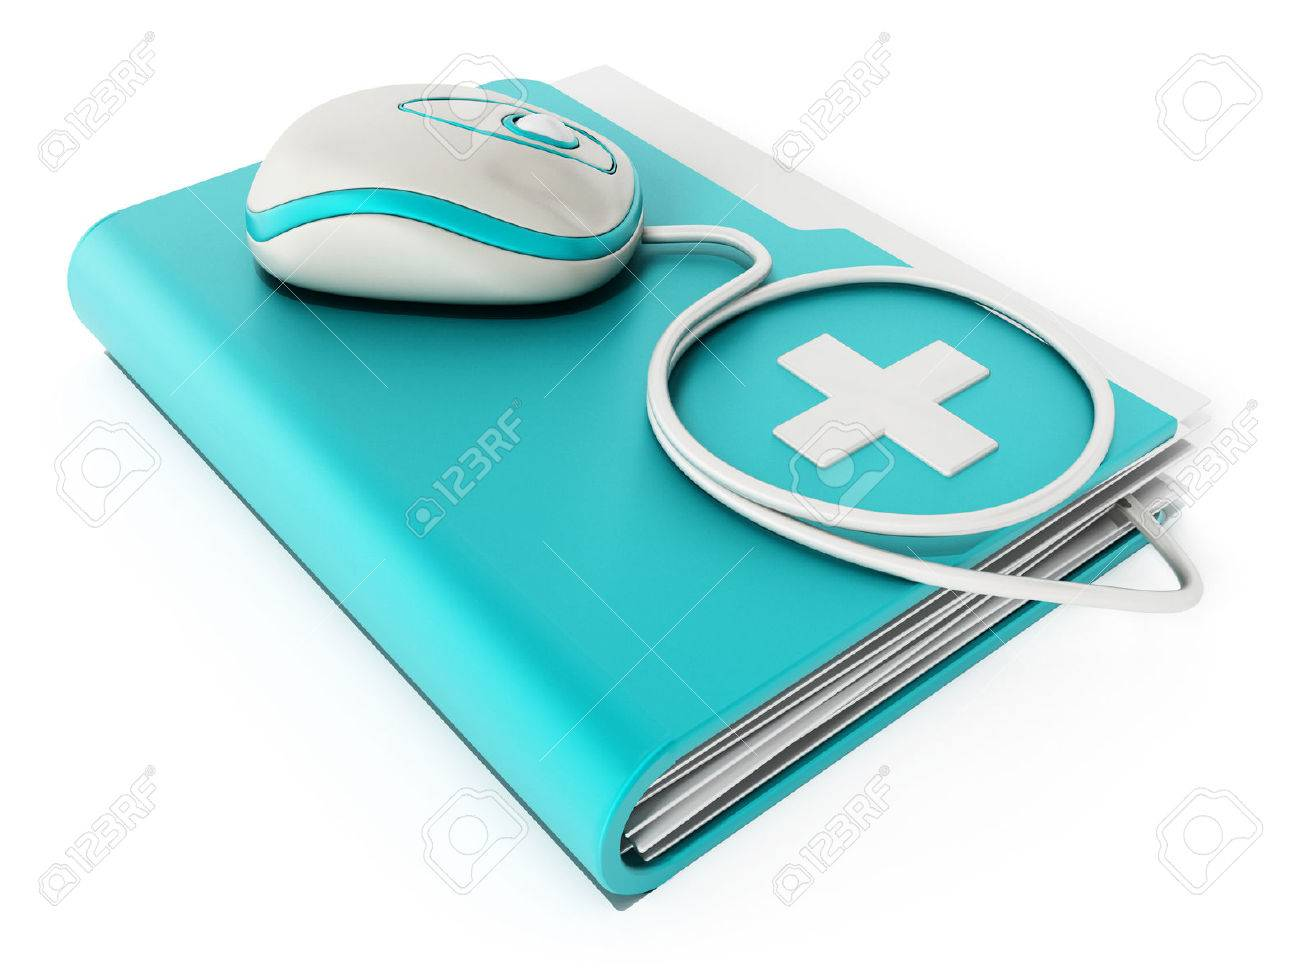 Computer mouse standing on medical folder Stock Photo - 44254003